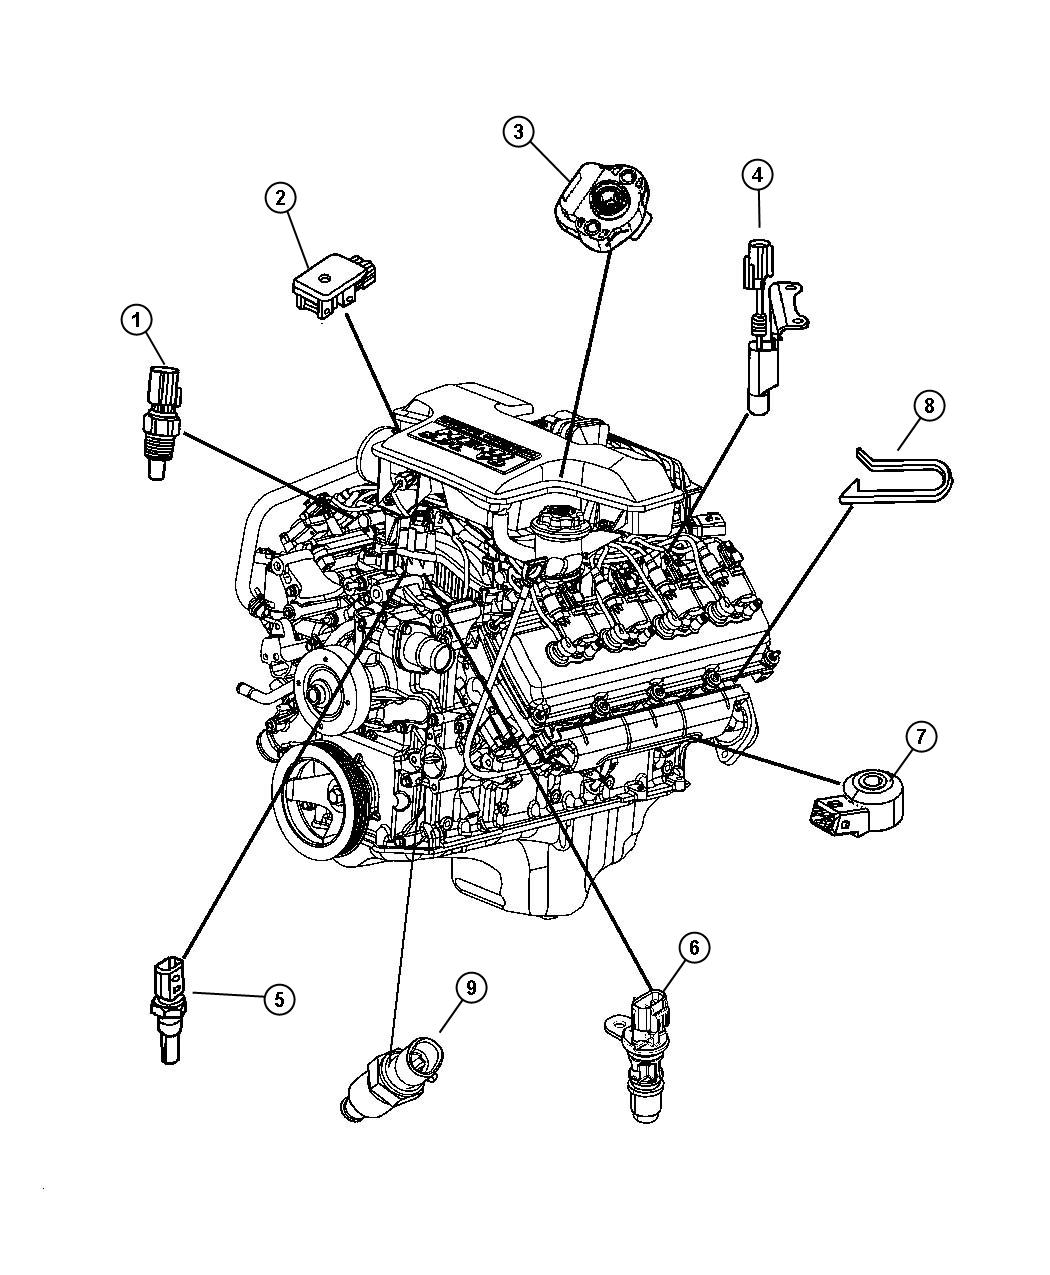 hight resolution of hemi wiring diagram wiring diagram centre5 7 hemi wiring harness wiring diagram inside